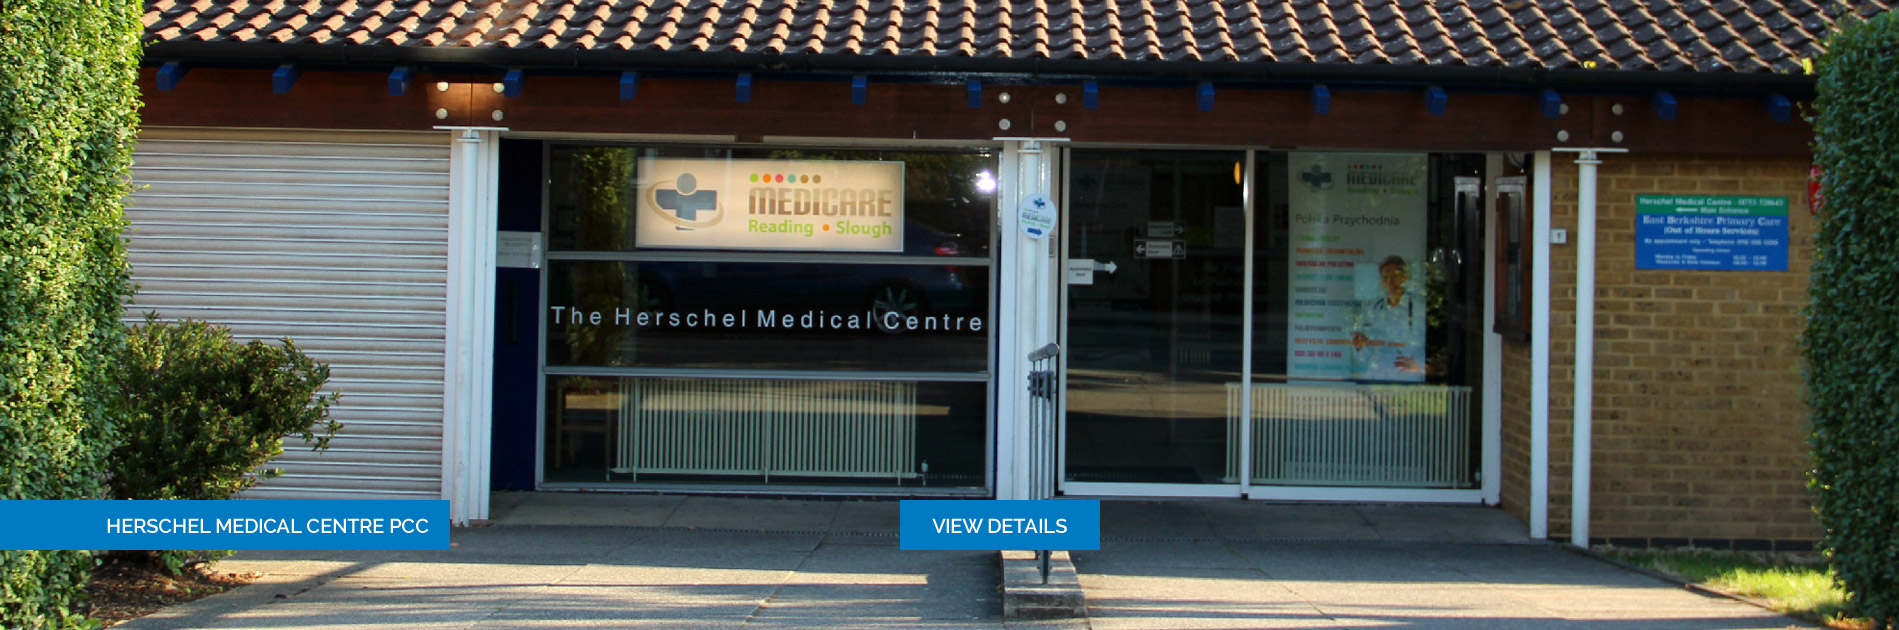 Herschel Medical Centre PCC